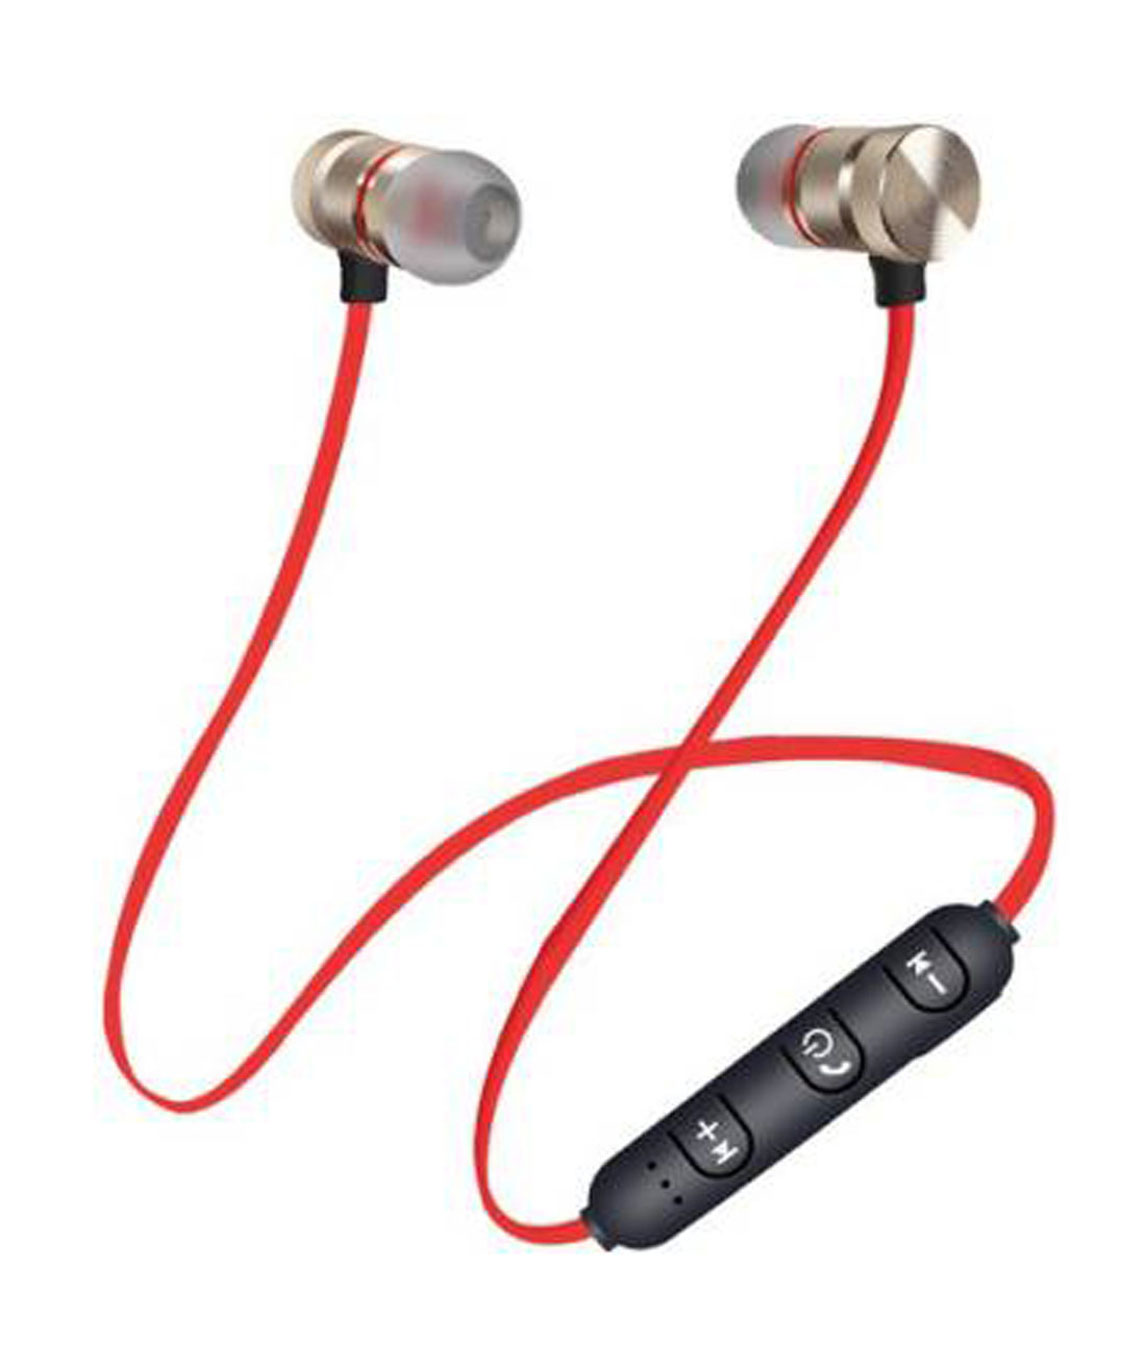 BLUETOOTH MAGNETIC HANDSFREE HEADPHONES FOR SMARTPHONES BLUETOOTH HEADSET WITH MIC (RED, BLACK, IN THE EAR)